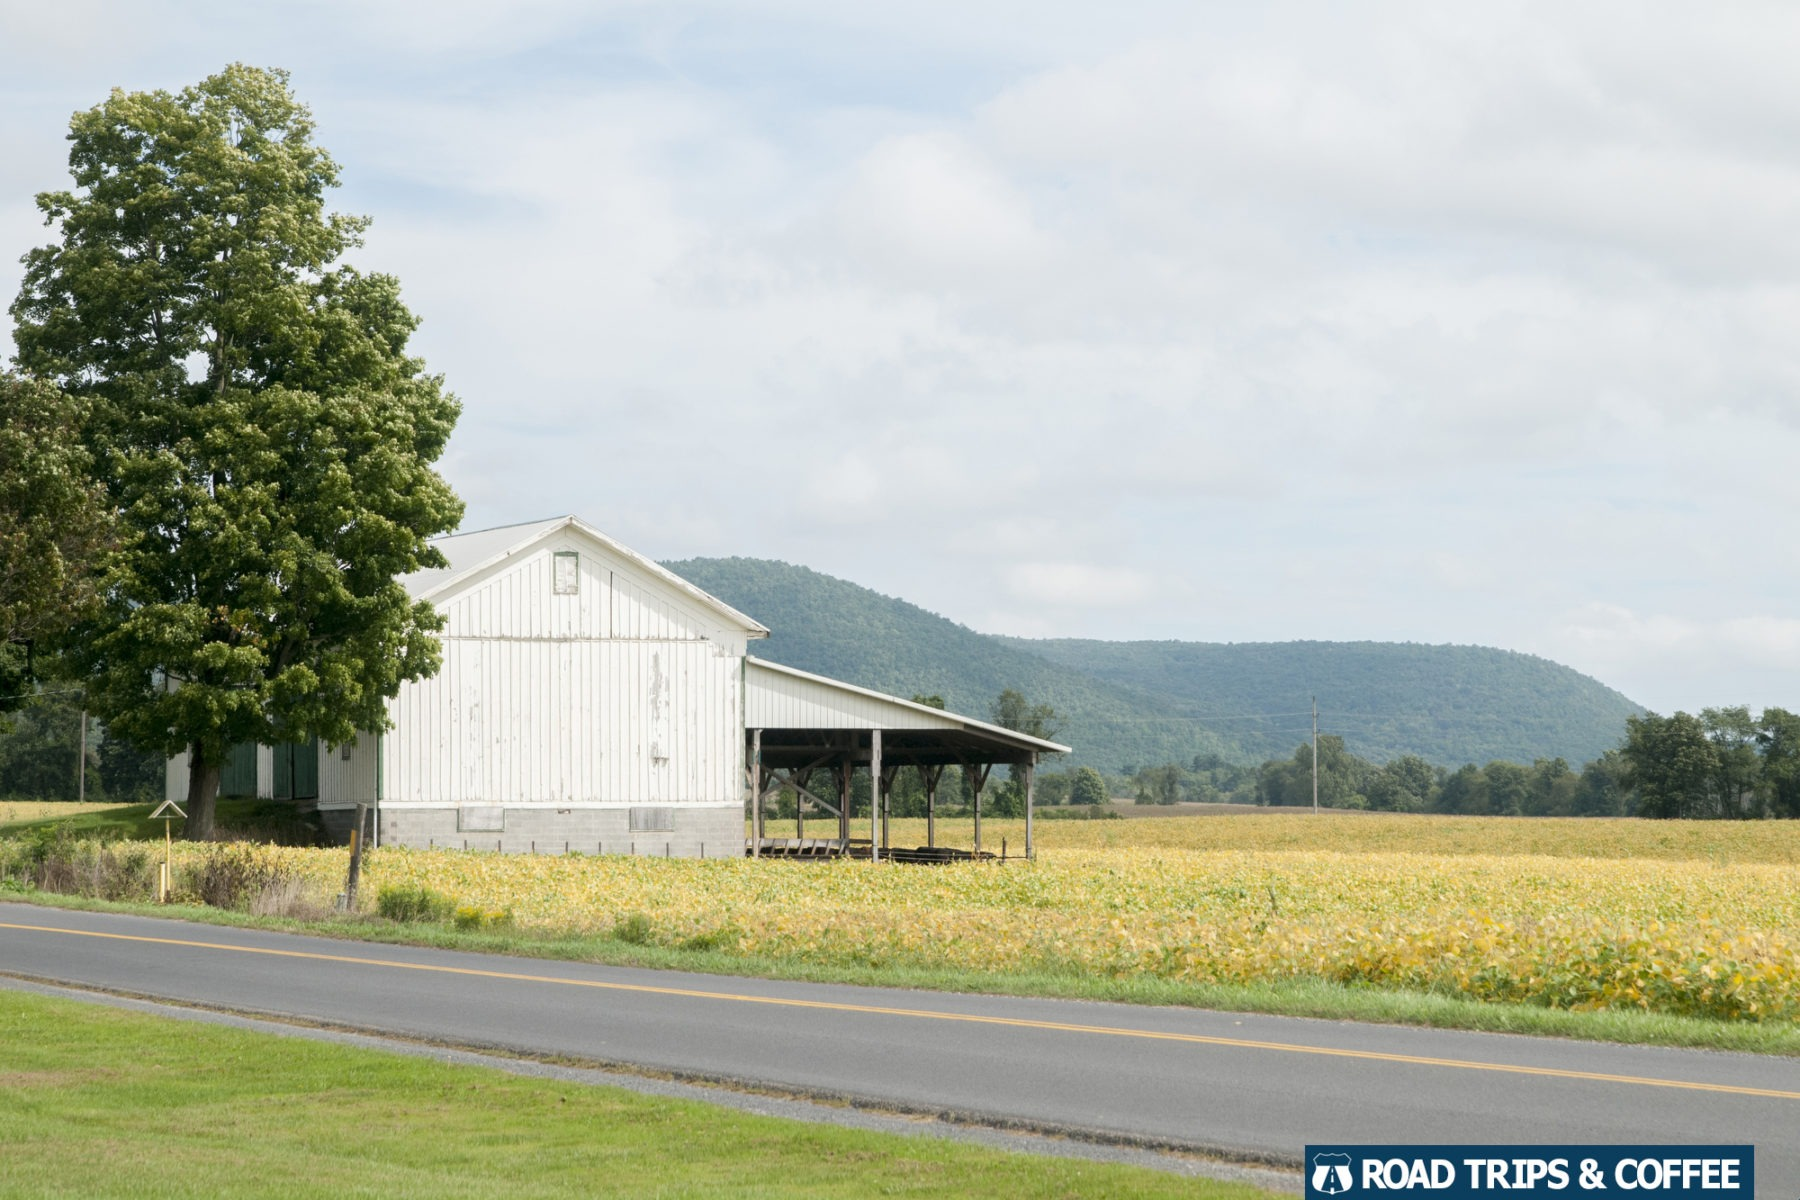 An old white barn with a great view in Hammondsport, New York